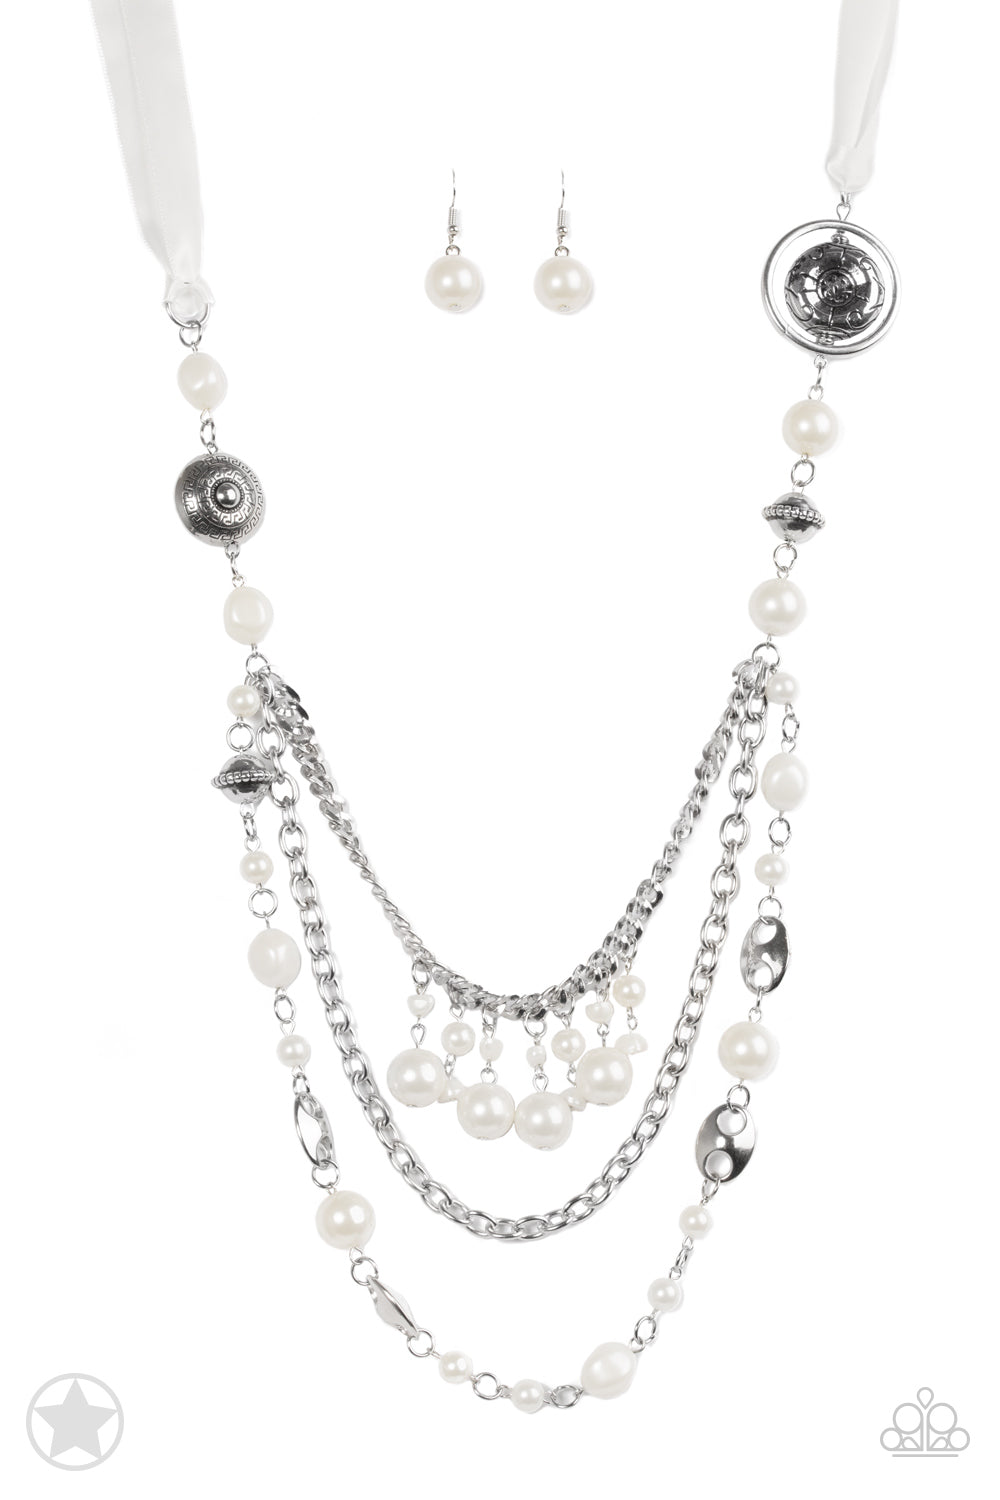 Paparazzi All The Trimmings - Ivory Silver Faux Pearl Necklace & Earrings Set